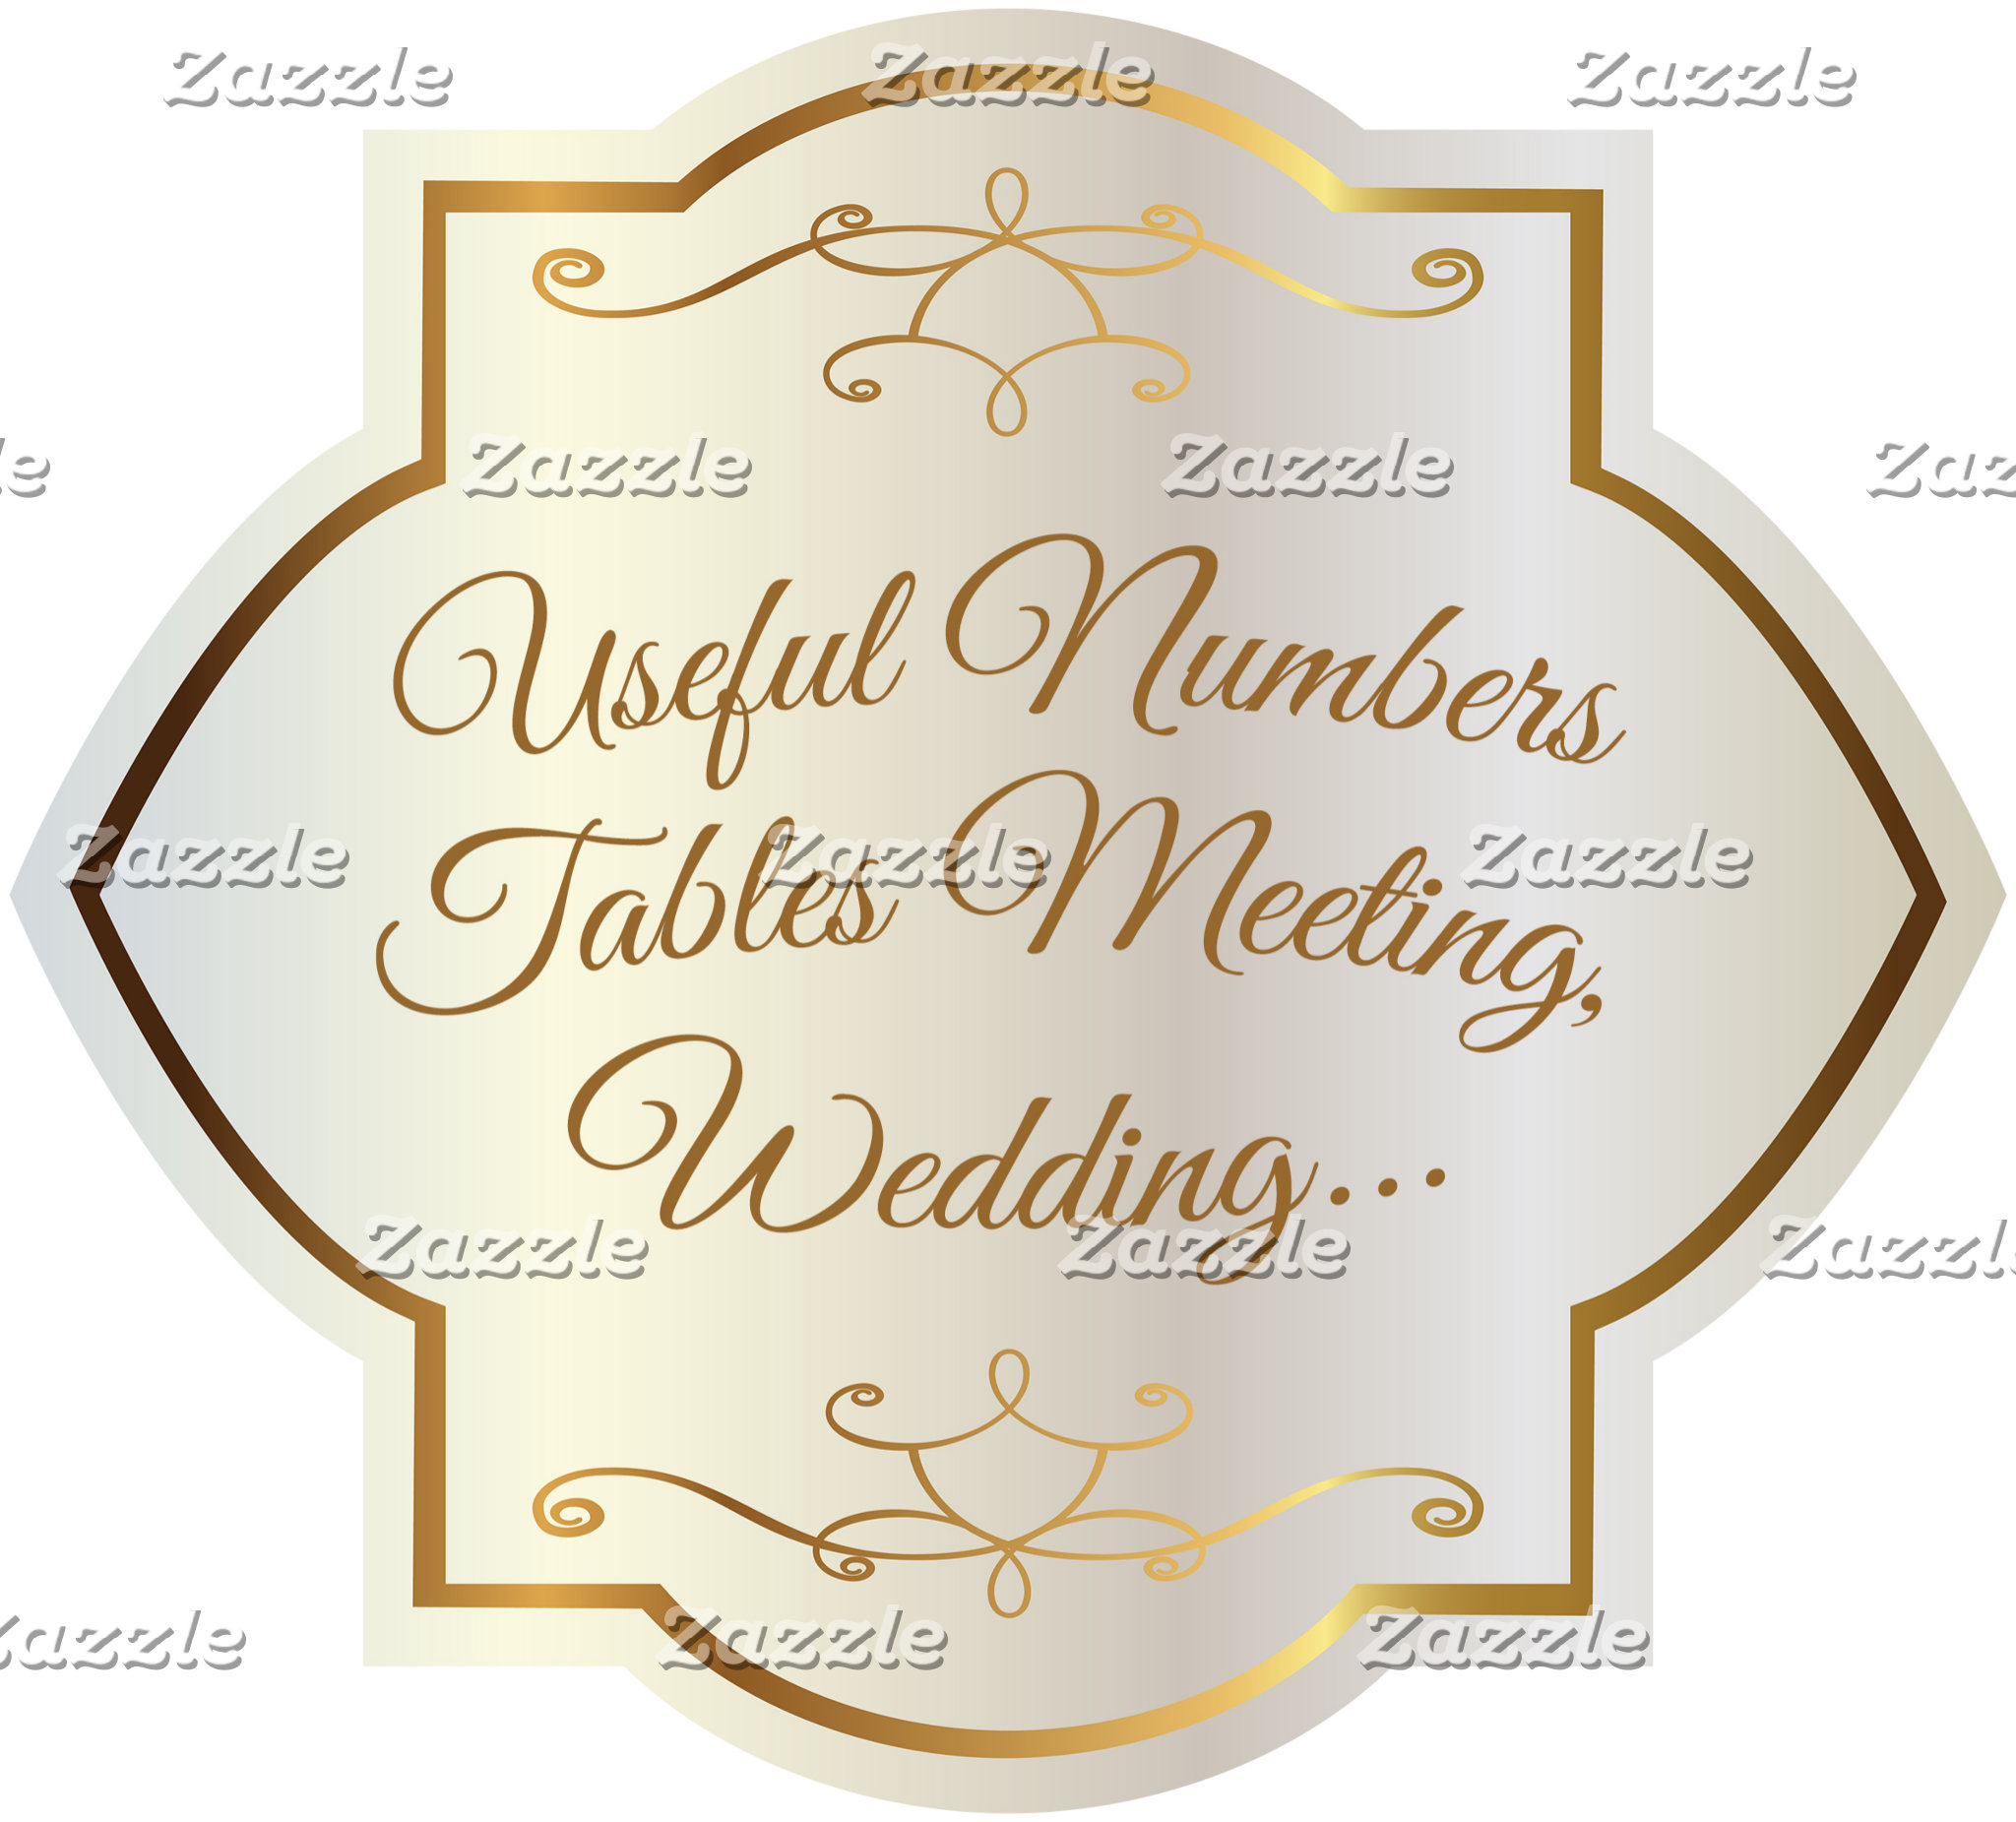 Tables Numbers, meeting, prom, wedding...